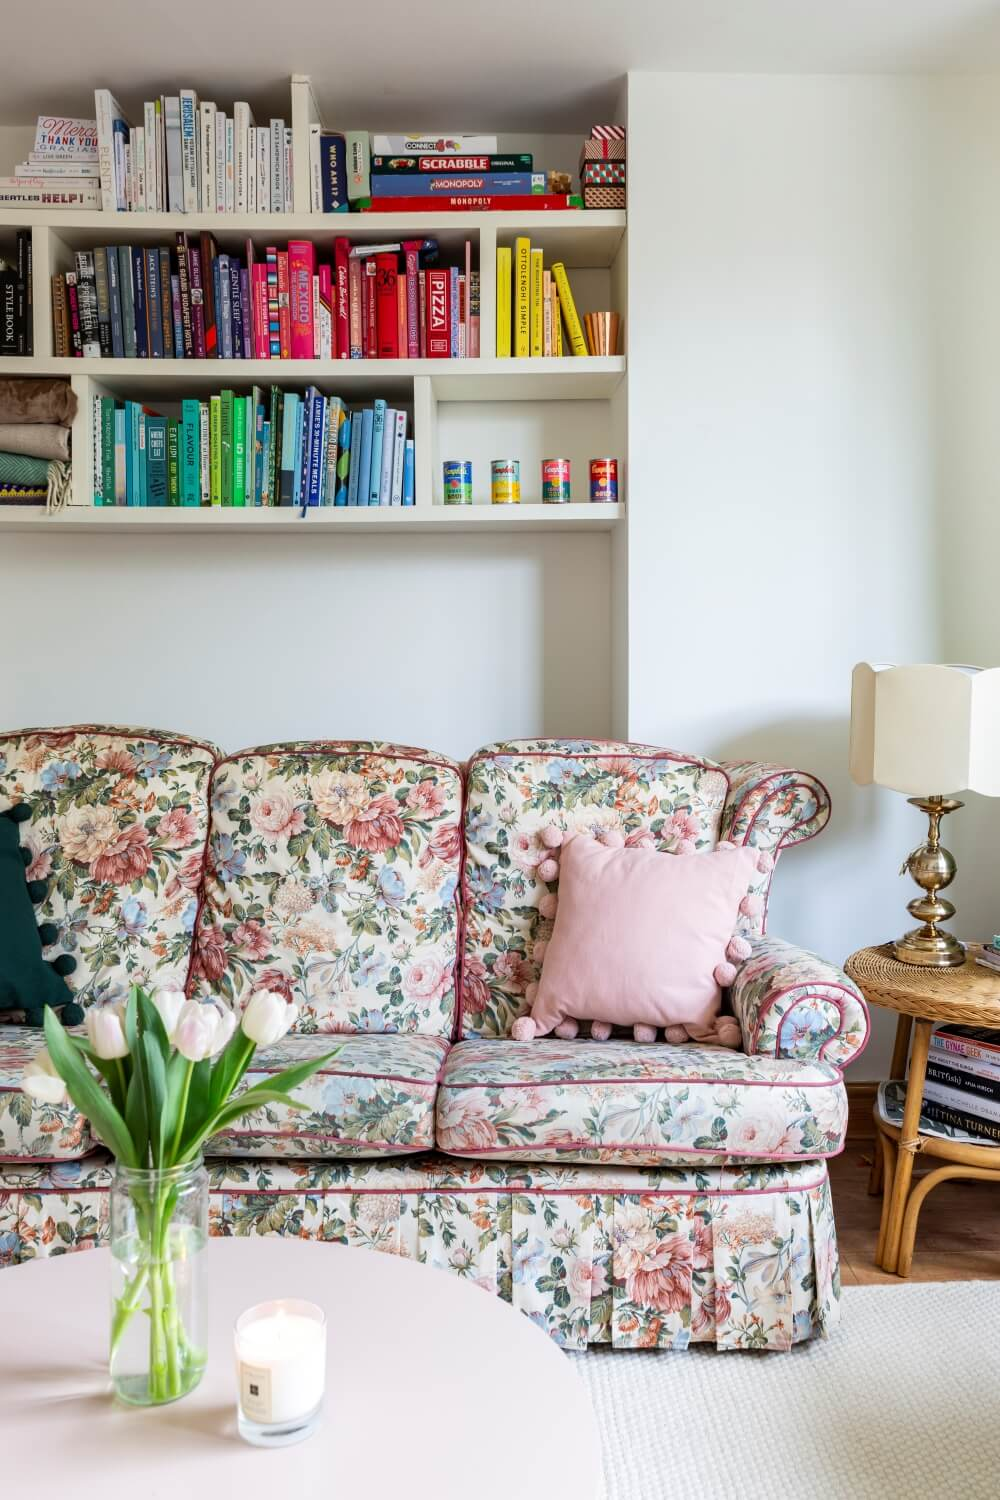 Decorate with Pink Home tour: Floral vintage sofas in a living room against a wall with books organised by colour